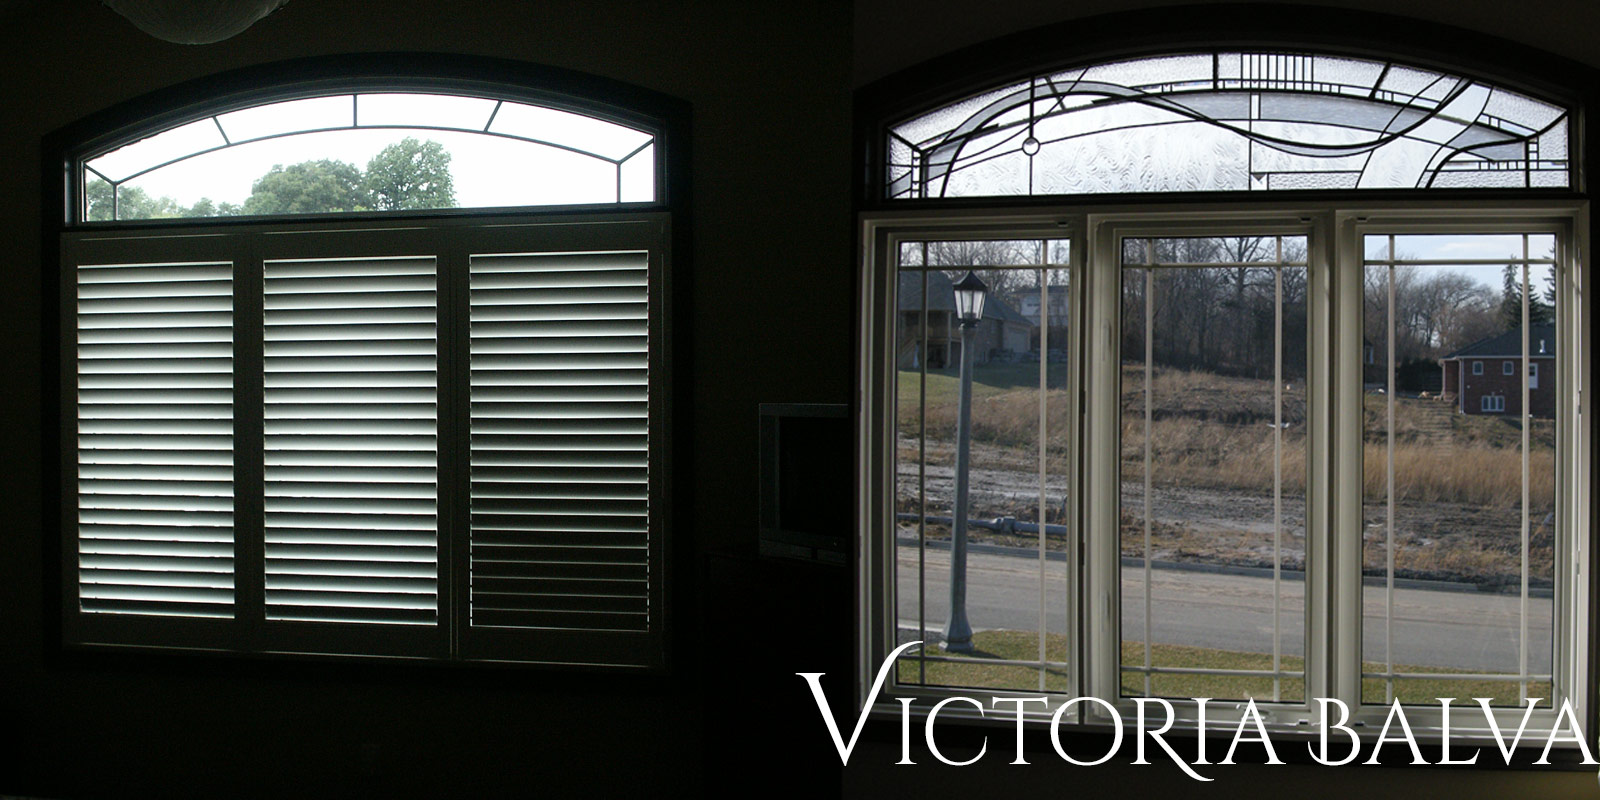 Contamporary leaded glass bedroom transom with jewels and beveled glass adding privacy and beauty